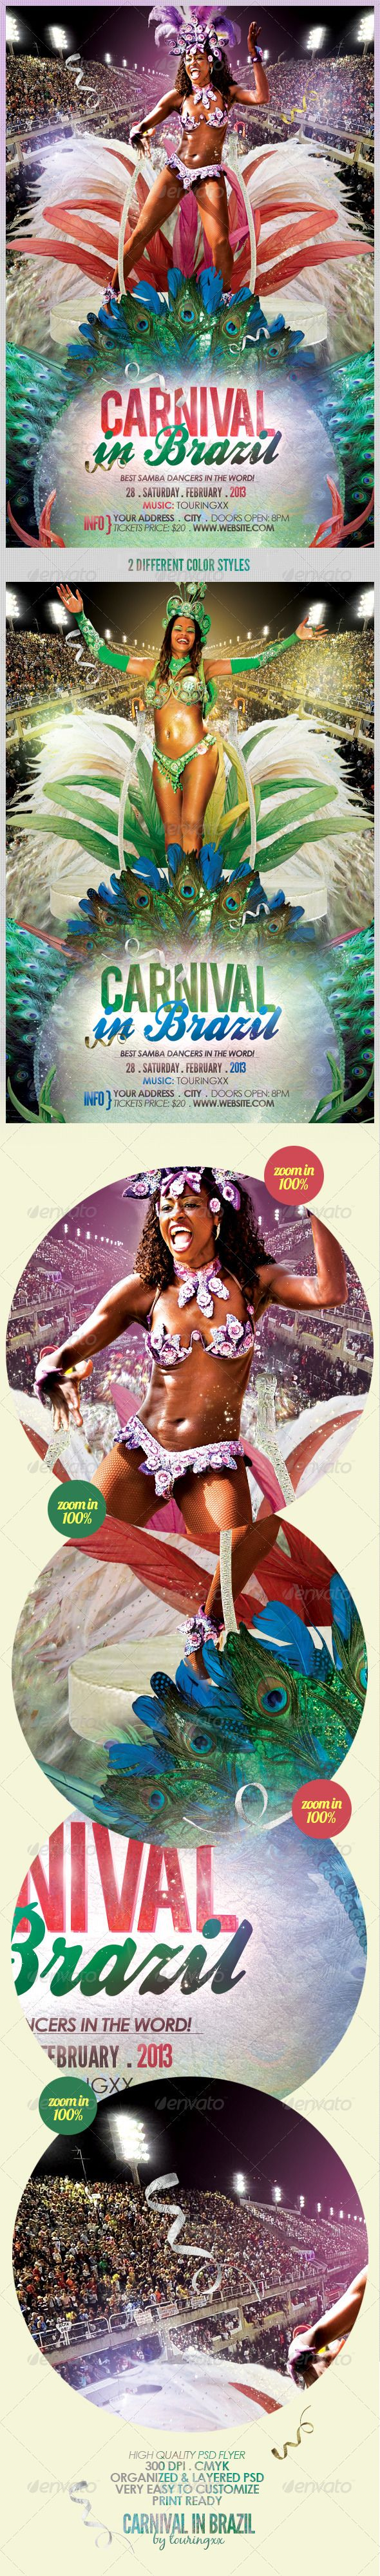 Carnival In Brazil Flyer Template - $6. ***This flyer is perfect for the promotion of Festivals, Parades, Club Parties, Musicals, Shows, Events or Whatever You Want!.***